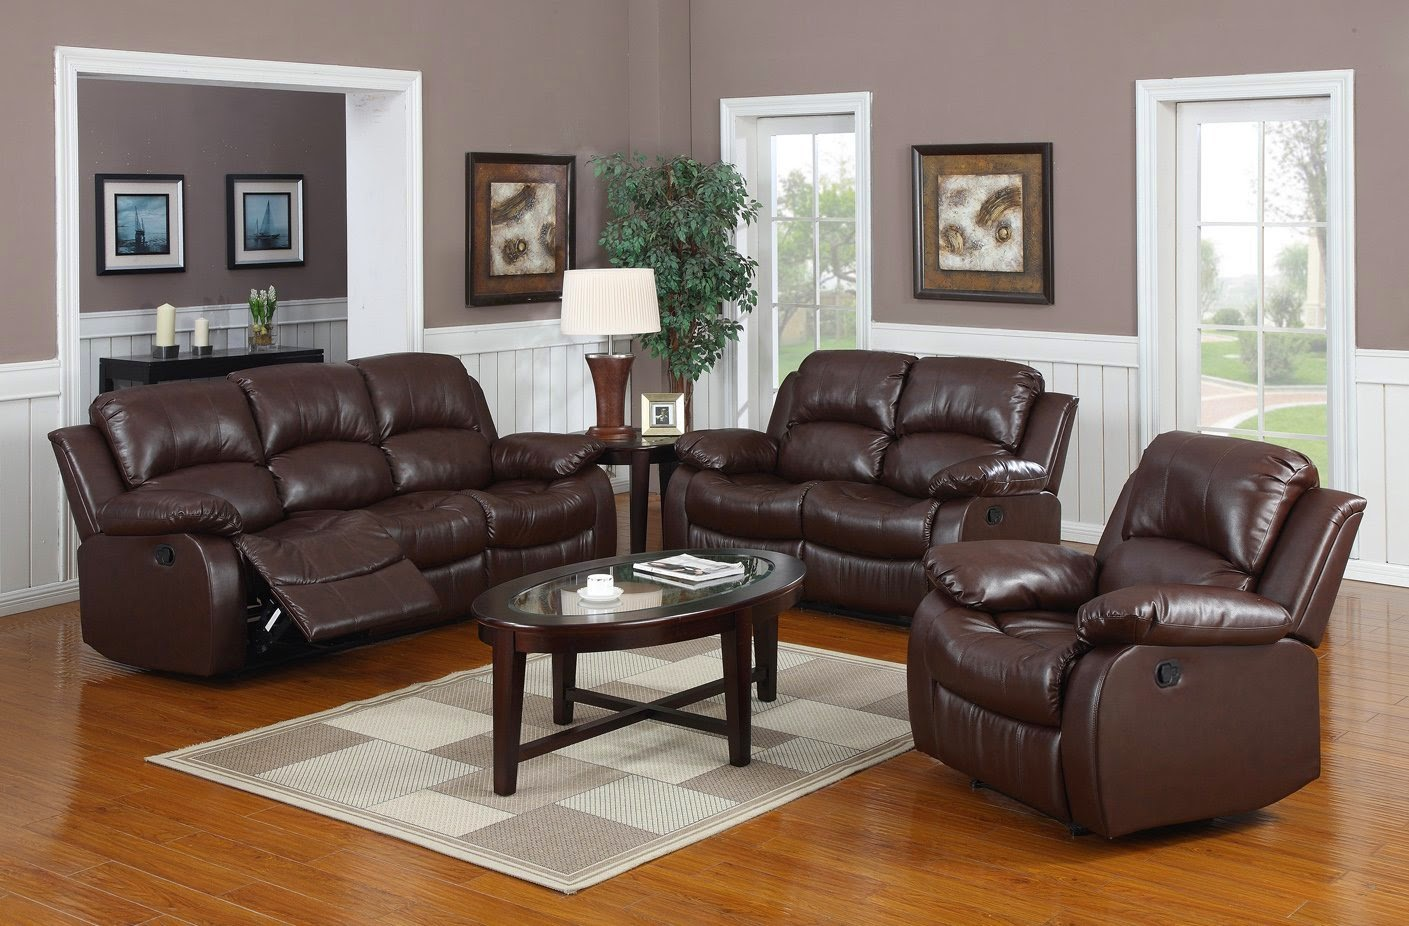 Reclining Sofa Reviews Www Allaboutyouth Net ~ Baycliffe Reclining Sofa Reviews